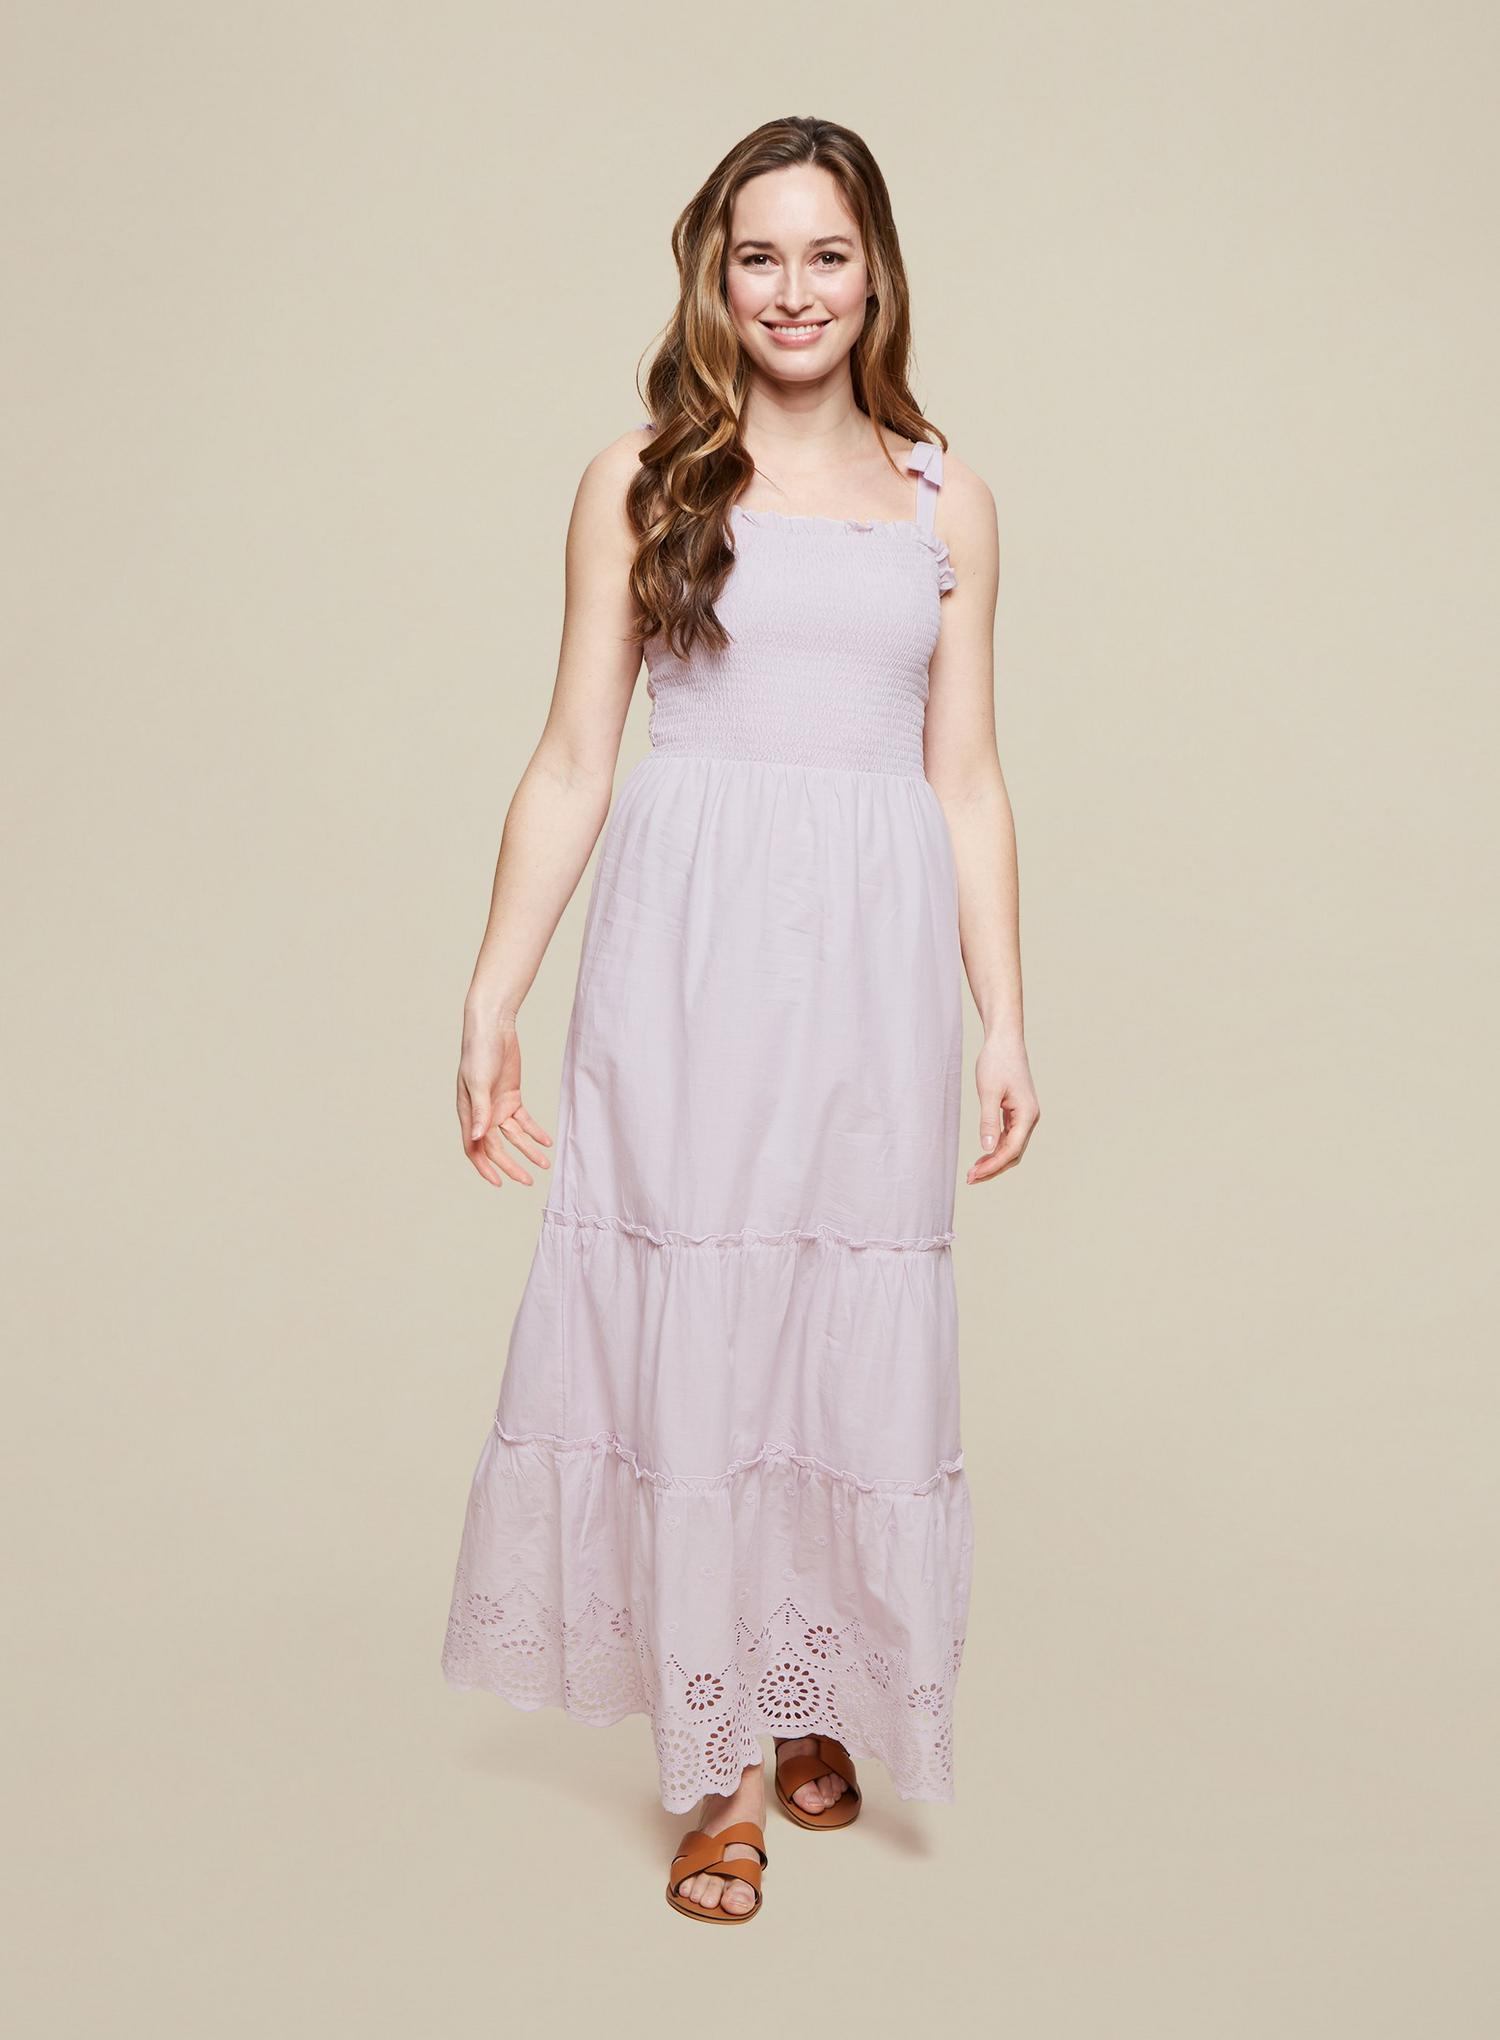 156 Lilac Broderie Camisole Dress image number 3